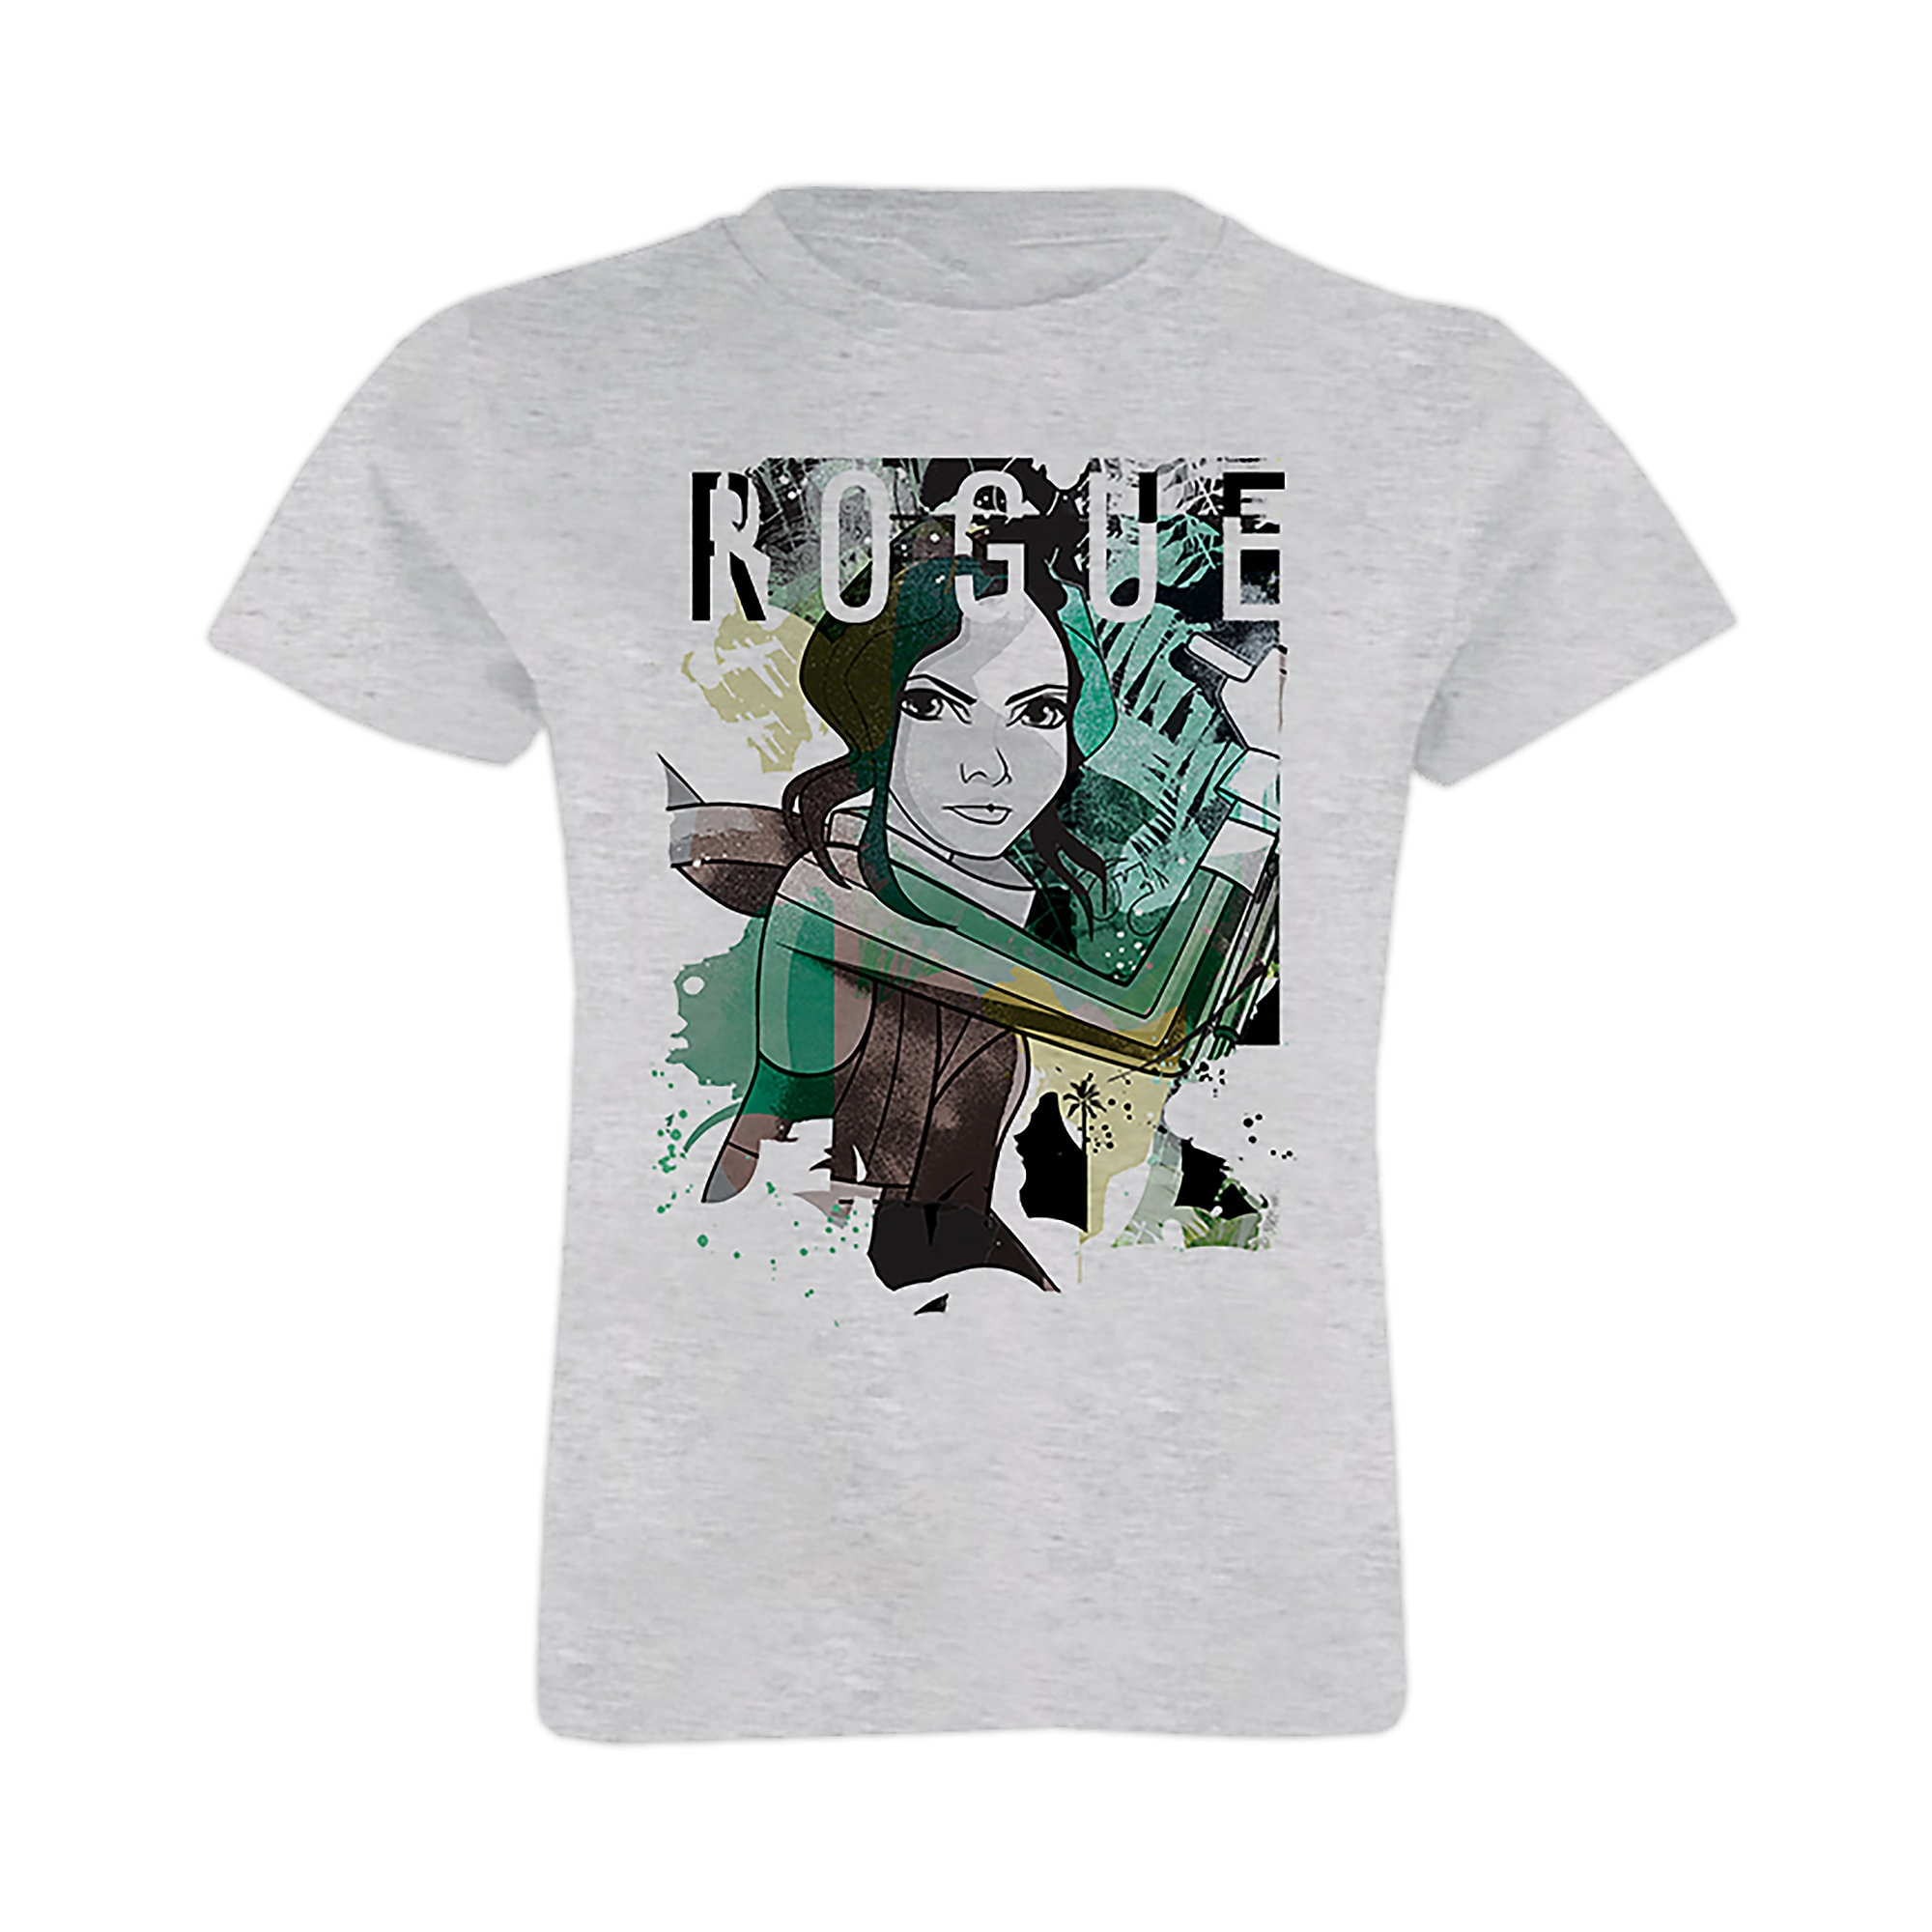 Star Wars Jyn Rogue Tee for Girls - Customizable